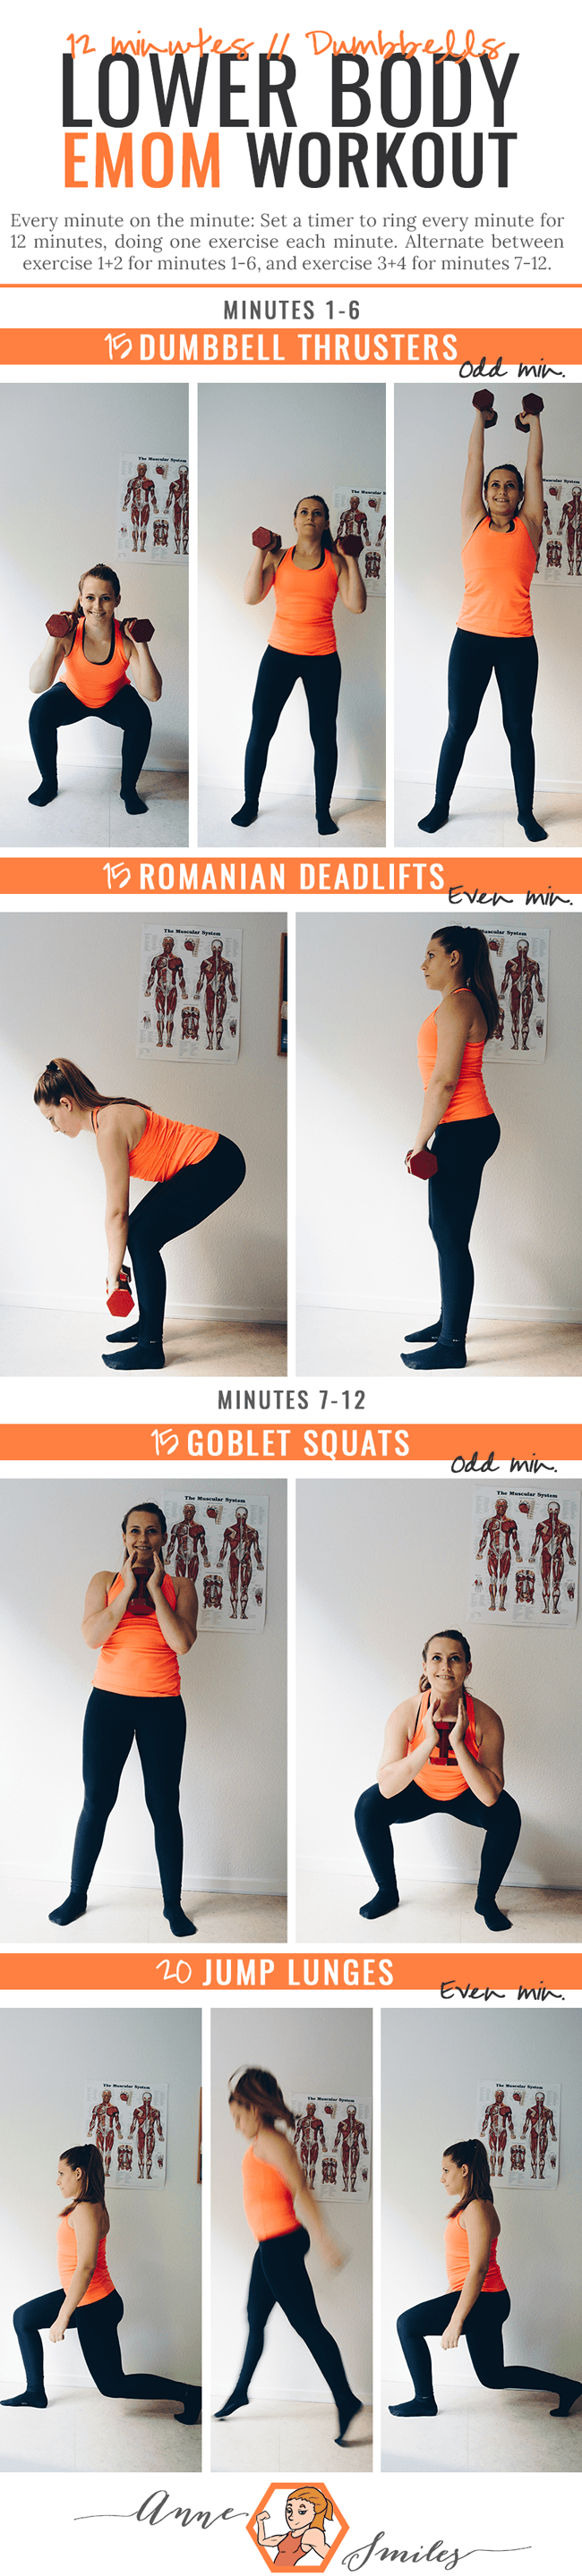 12 minutes lower body emom workout using dumbbells.